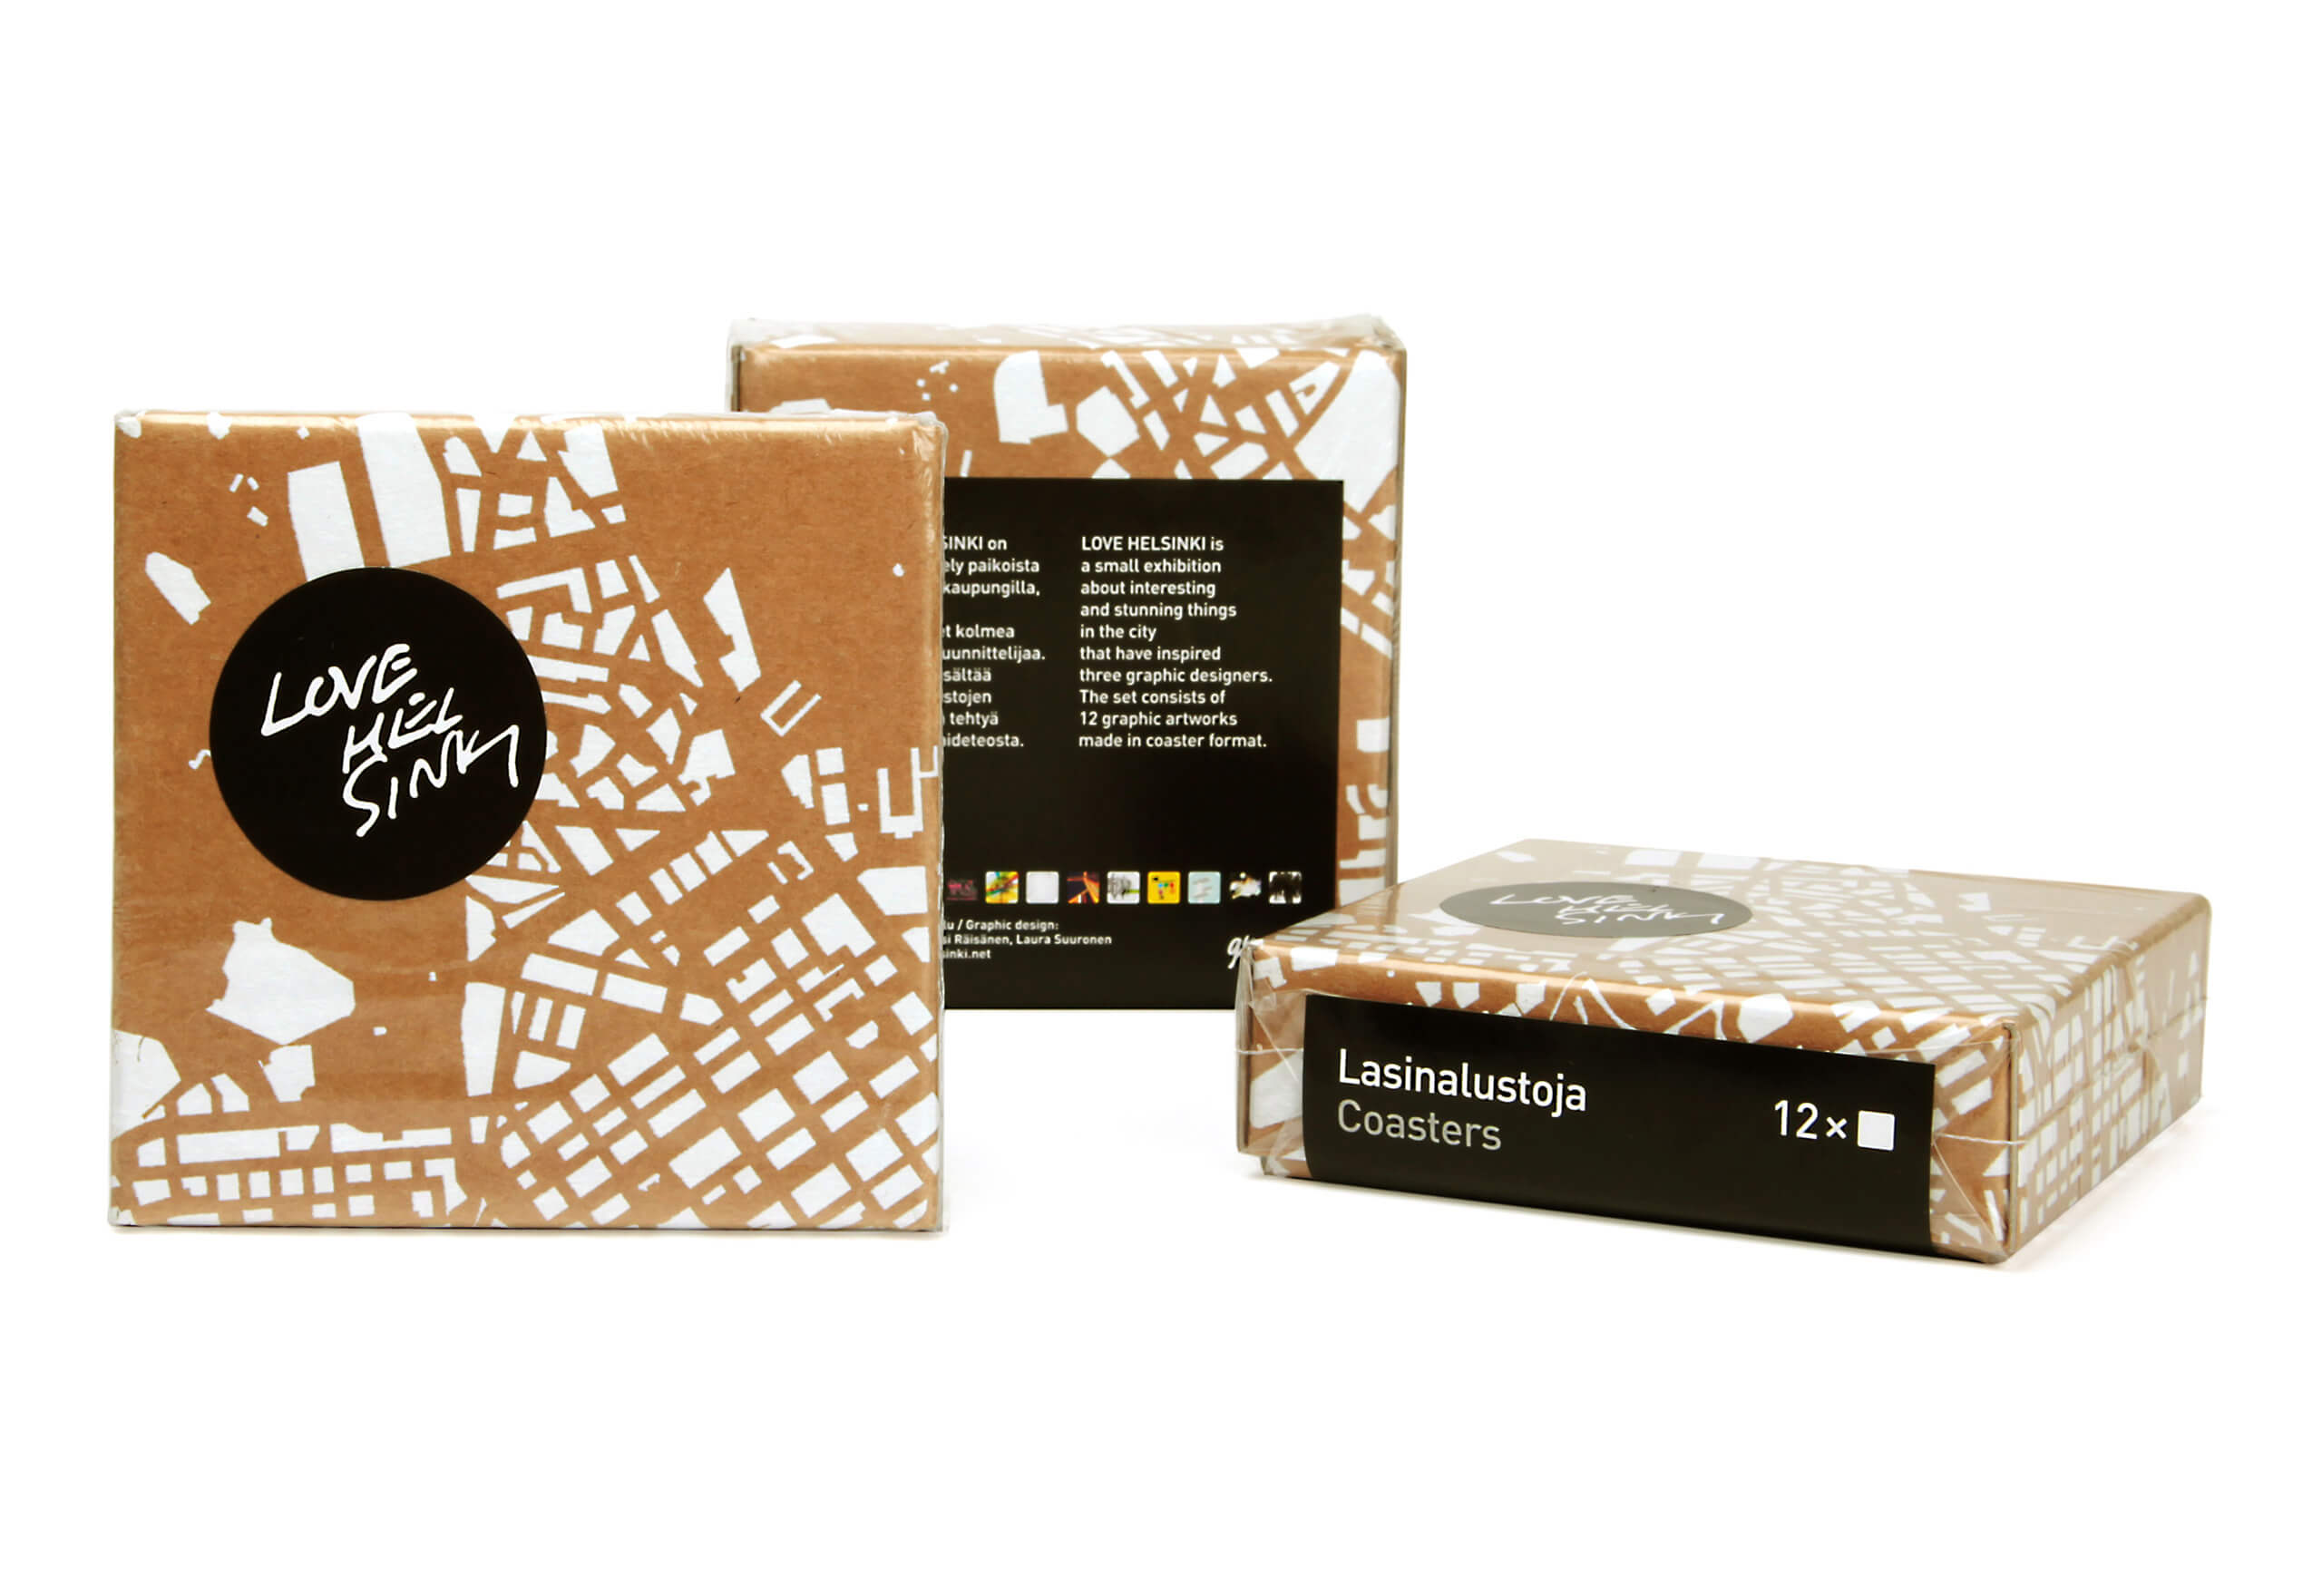 Laura-Suuronen-Love-Helsinki-Packaging-2560